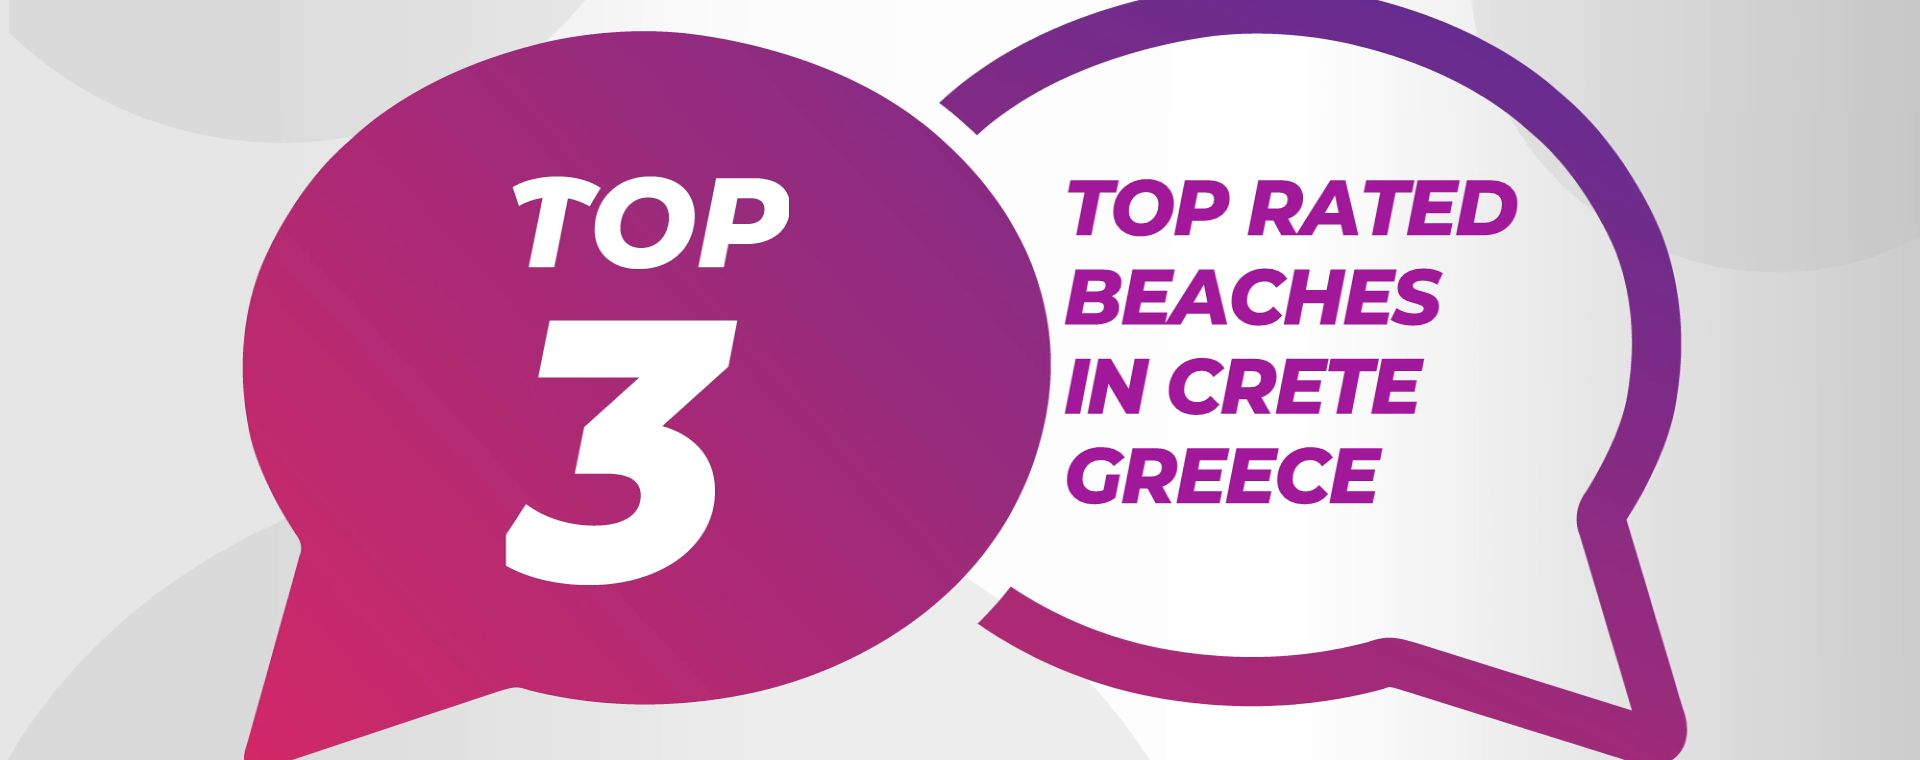 TOP RATED BEACHES IN CRETE